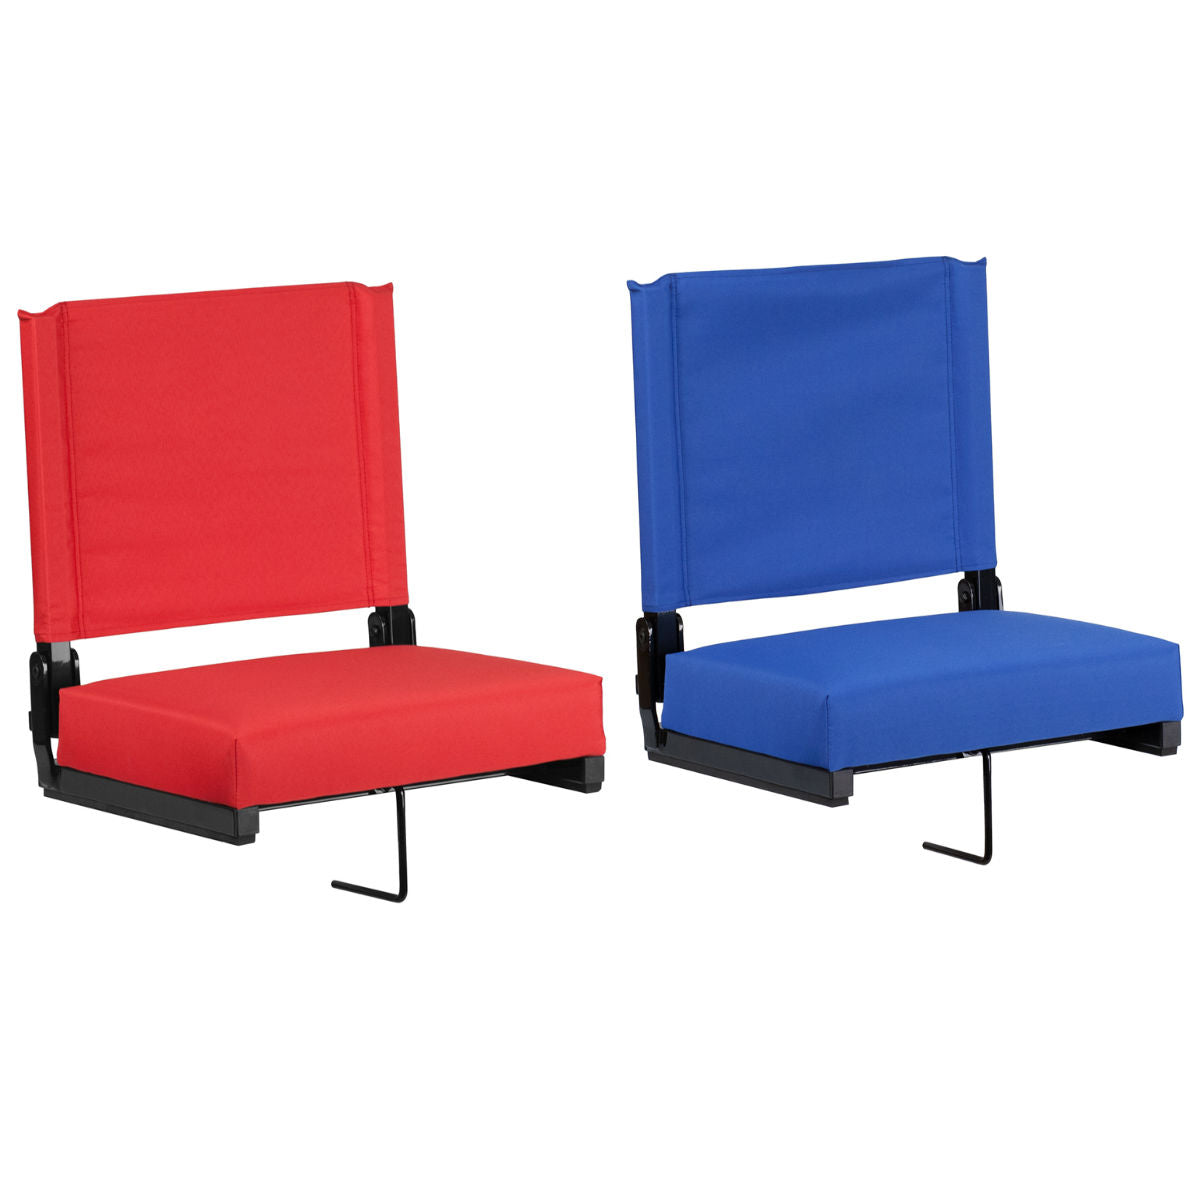 Flash Furniture Grandstand Comfort Seats by Flash with Ultra-Padded Seat in Blue and Red